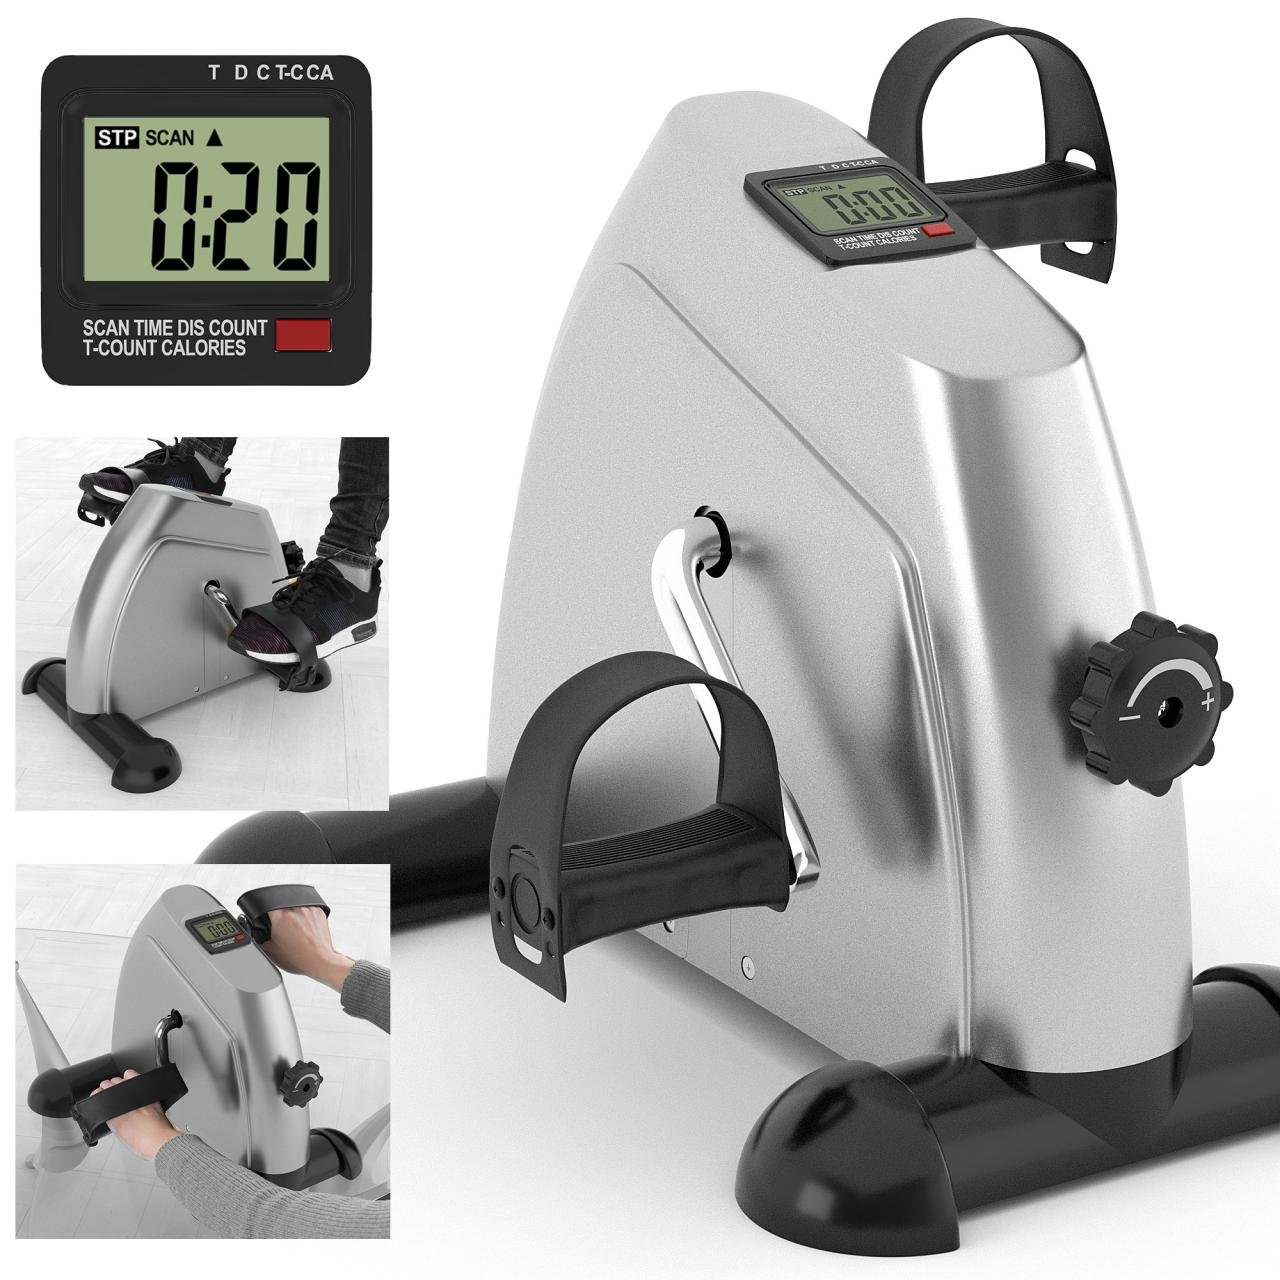 Kinetic Sports Mini Bike Pedaltrainer Heimtrainer Arm- und Beintrainer Bewegungstrainer mit Trainingscomputer Schwarz